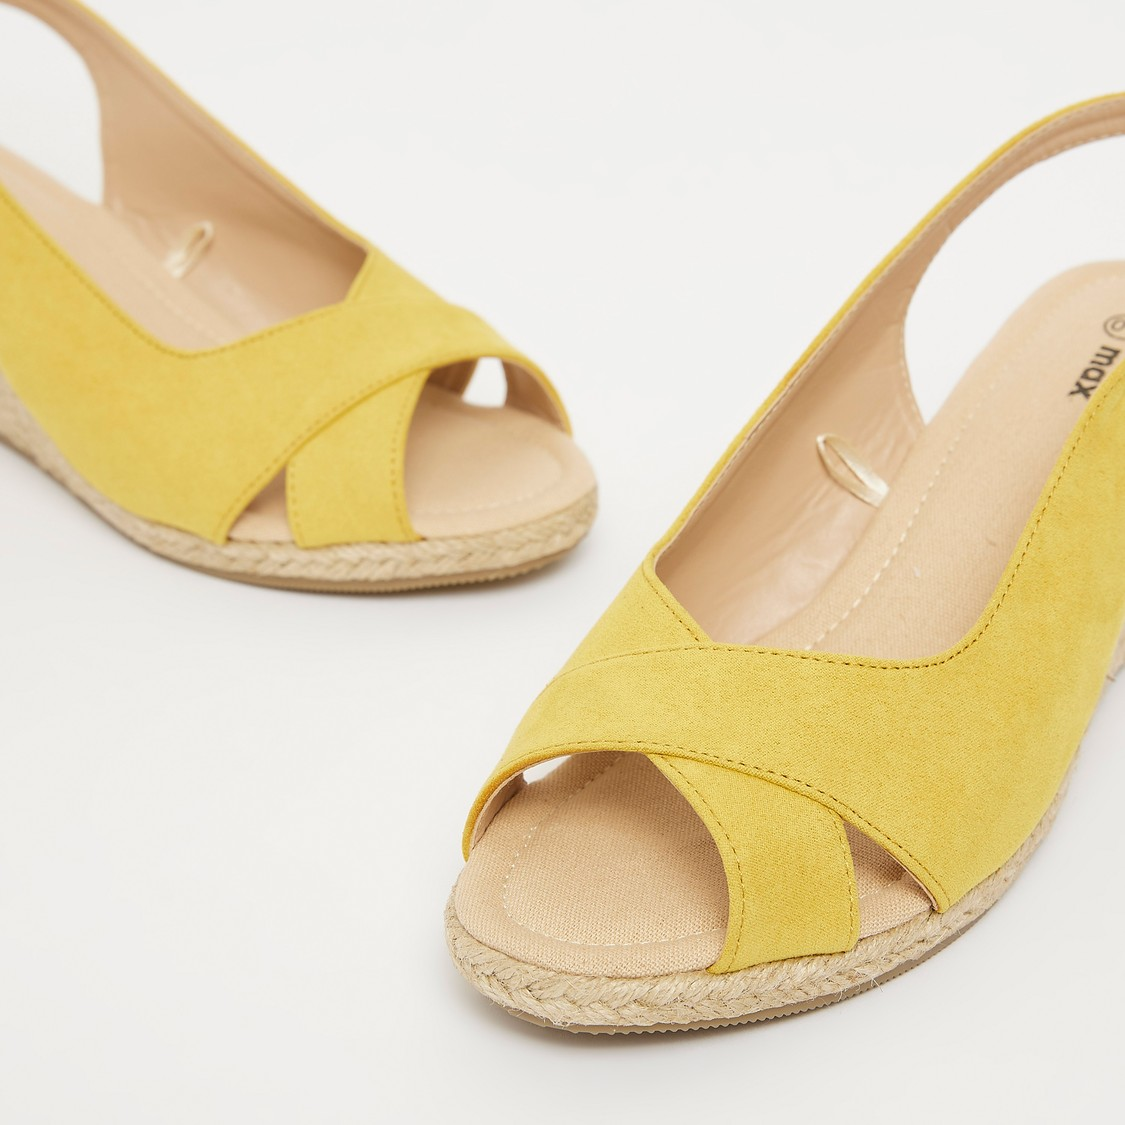 Cross Straps Sandals with Wedge Heels and Pin Buckle Closure